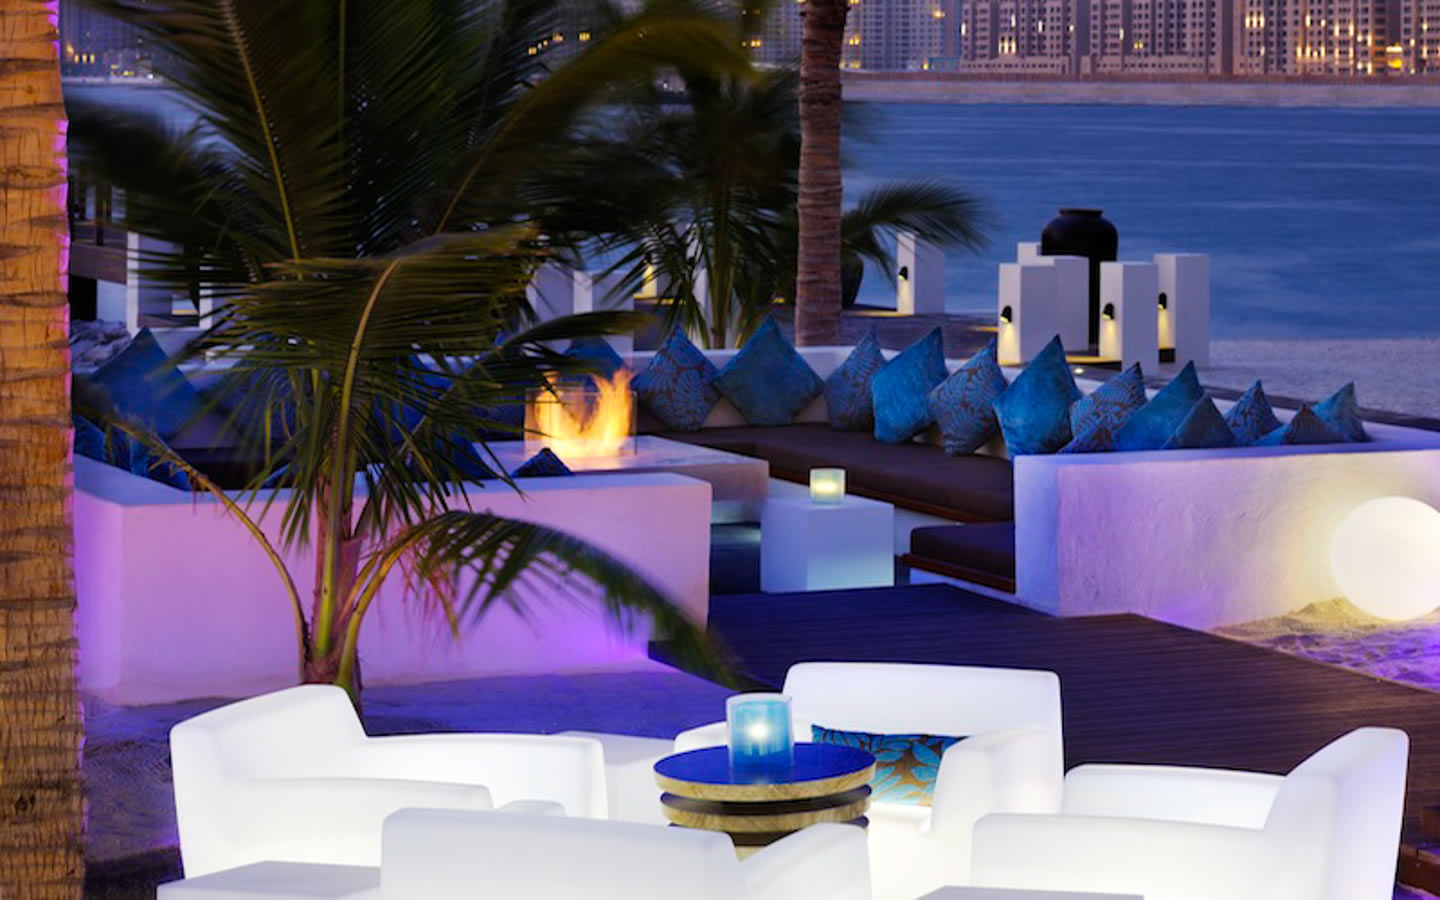 15 Best Outdoor Terraces in Dubai - The jetty Lounge, One&Only Royal Mirage